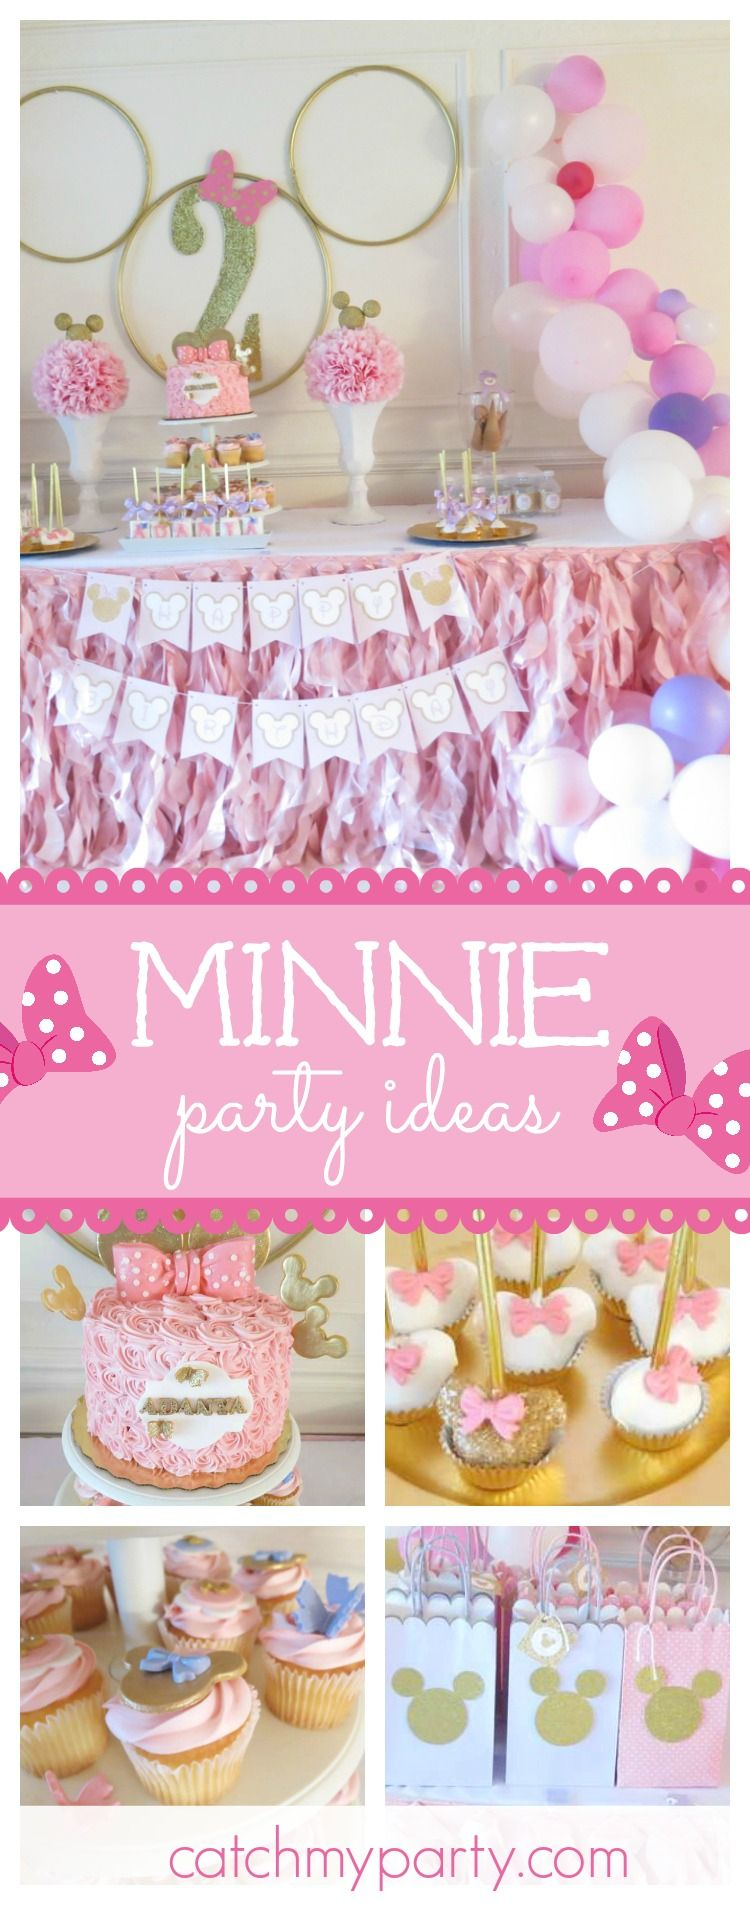 Take A Look At This Gorgeous Minnie Mouse 2nd Birthday Party The Balloon Decorations Are Amazing See More Ideas And Share Yours CatchMyParty